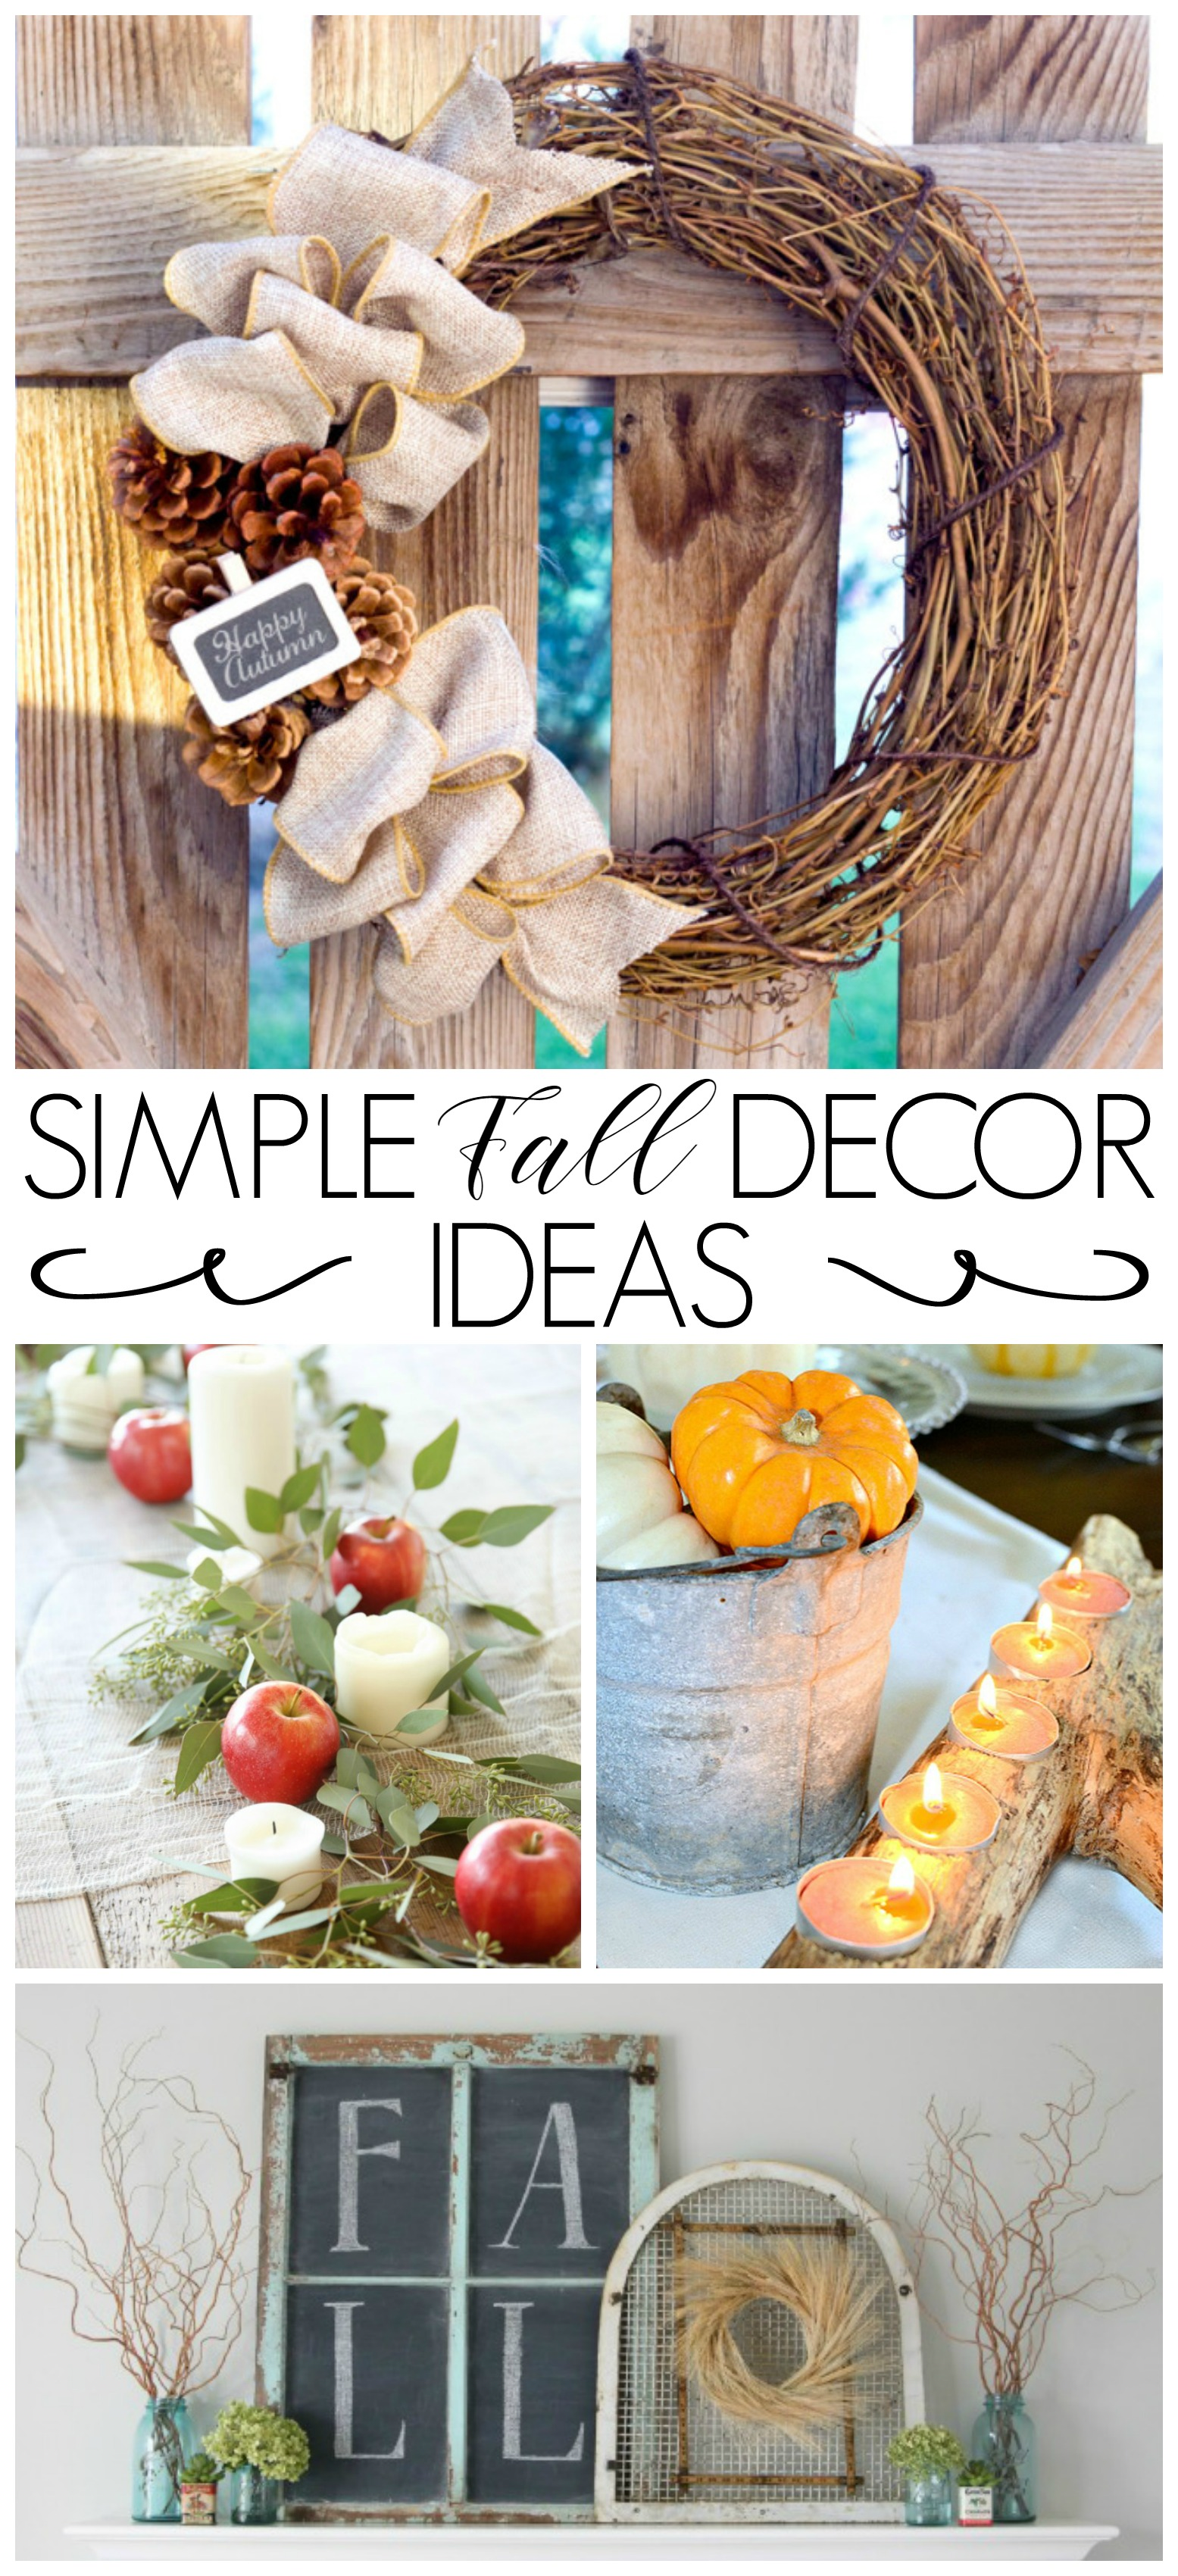 Simple Fall Decor Ideas for the home, porch and table at foxhollowcottage.com